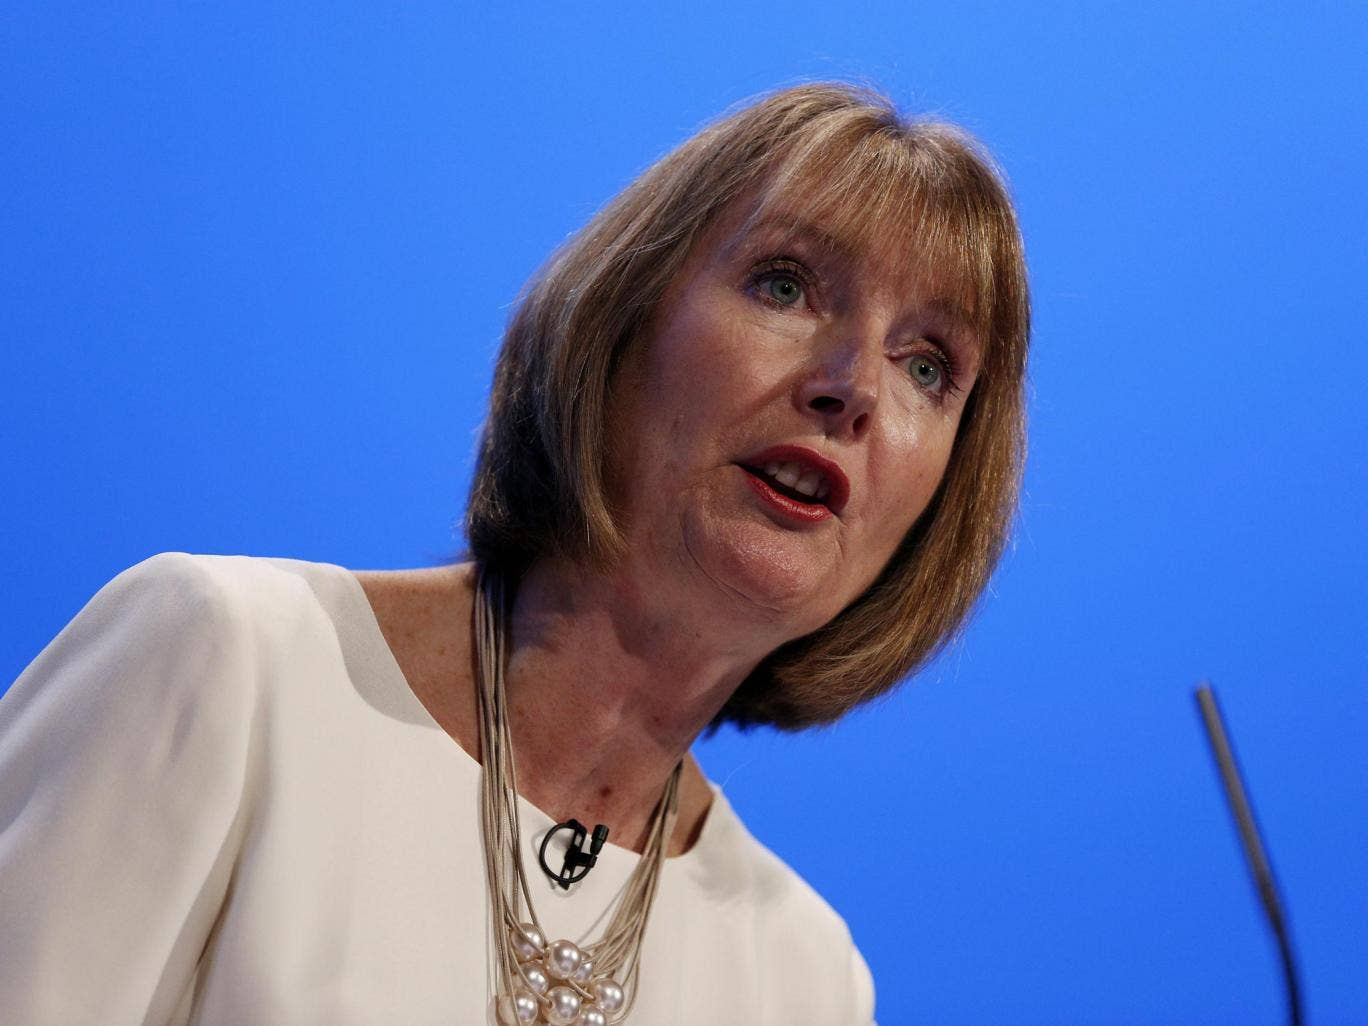 Deputy Labour leader and shadow culture secretary Harriet Harman has been accused by the Daily Mail of failing to answer 'charges' they have levelled against her